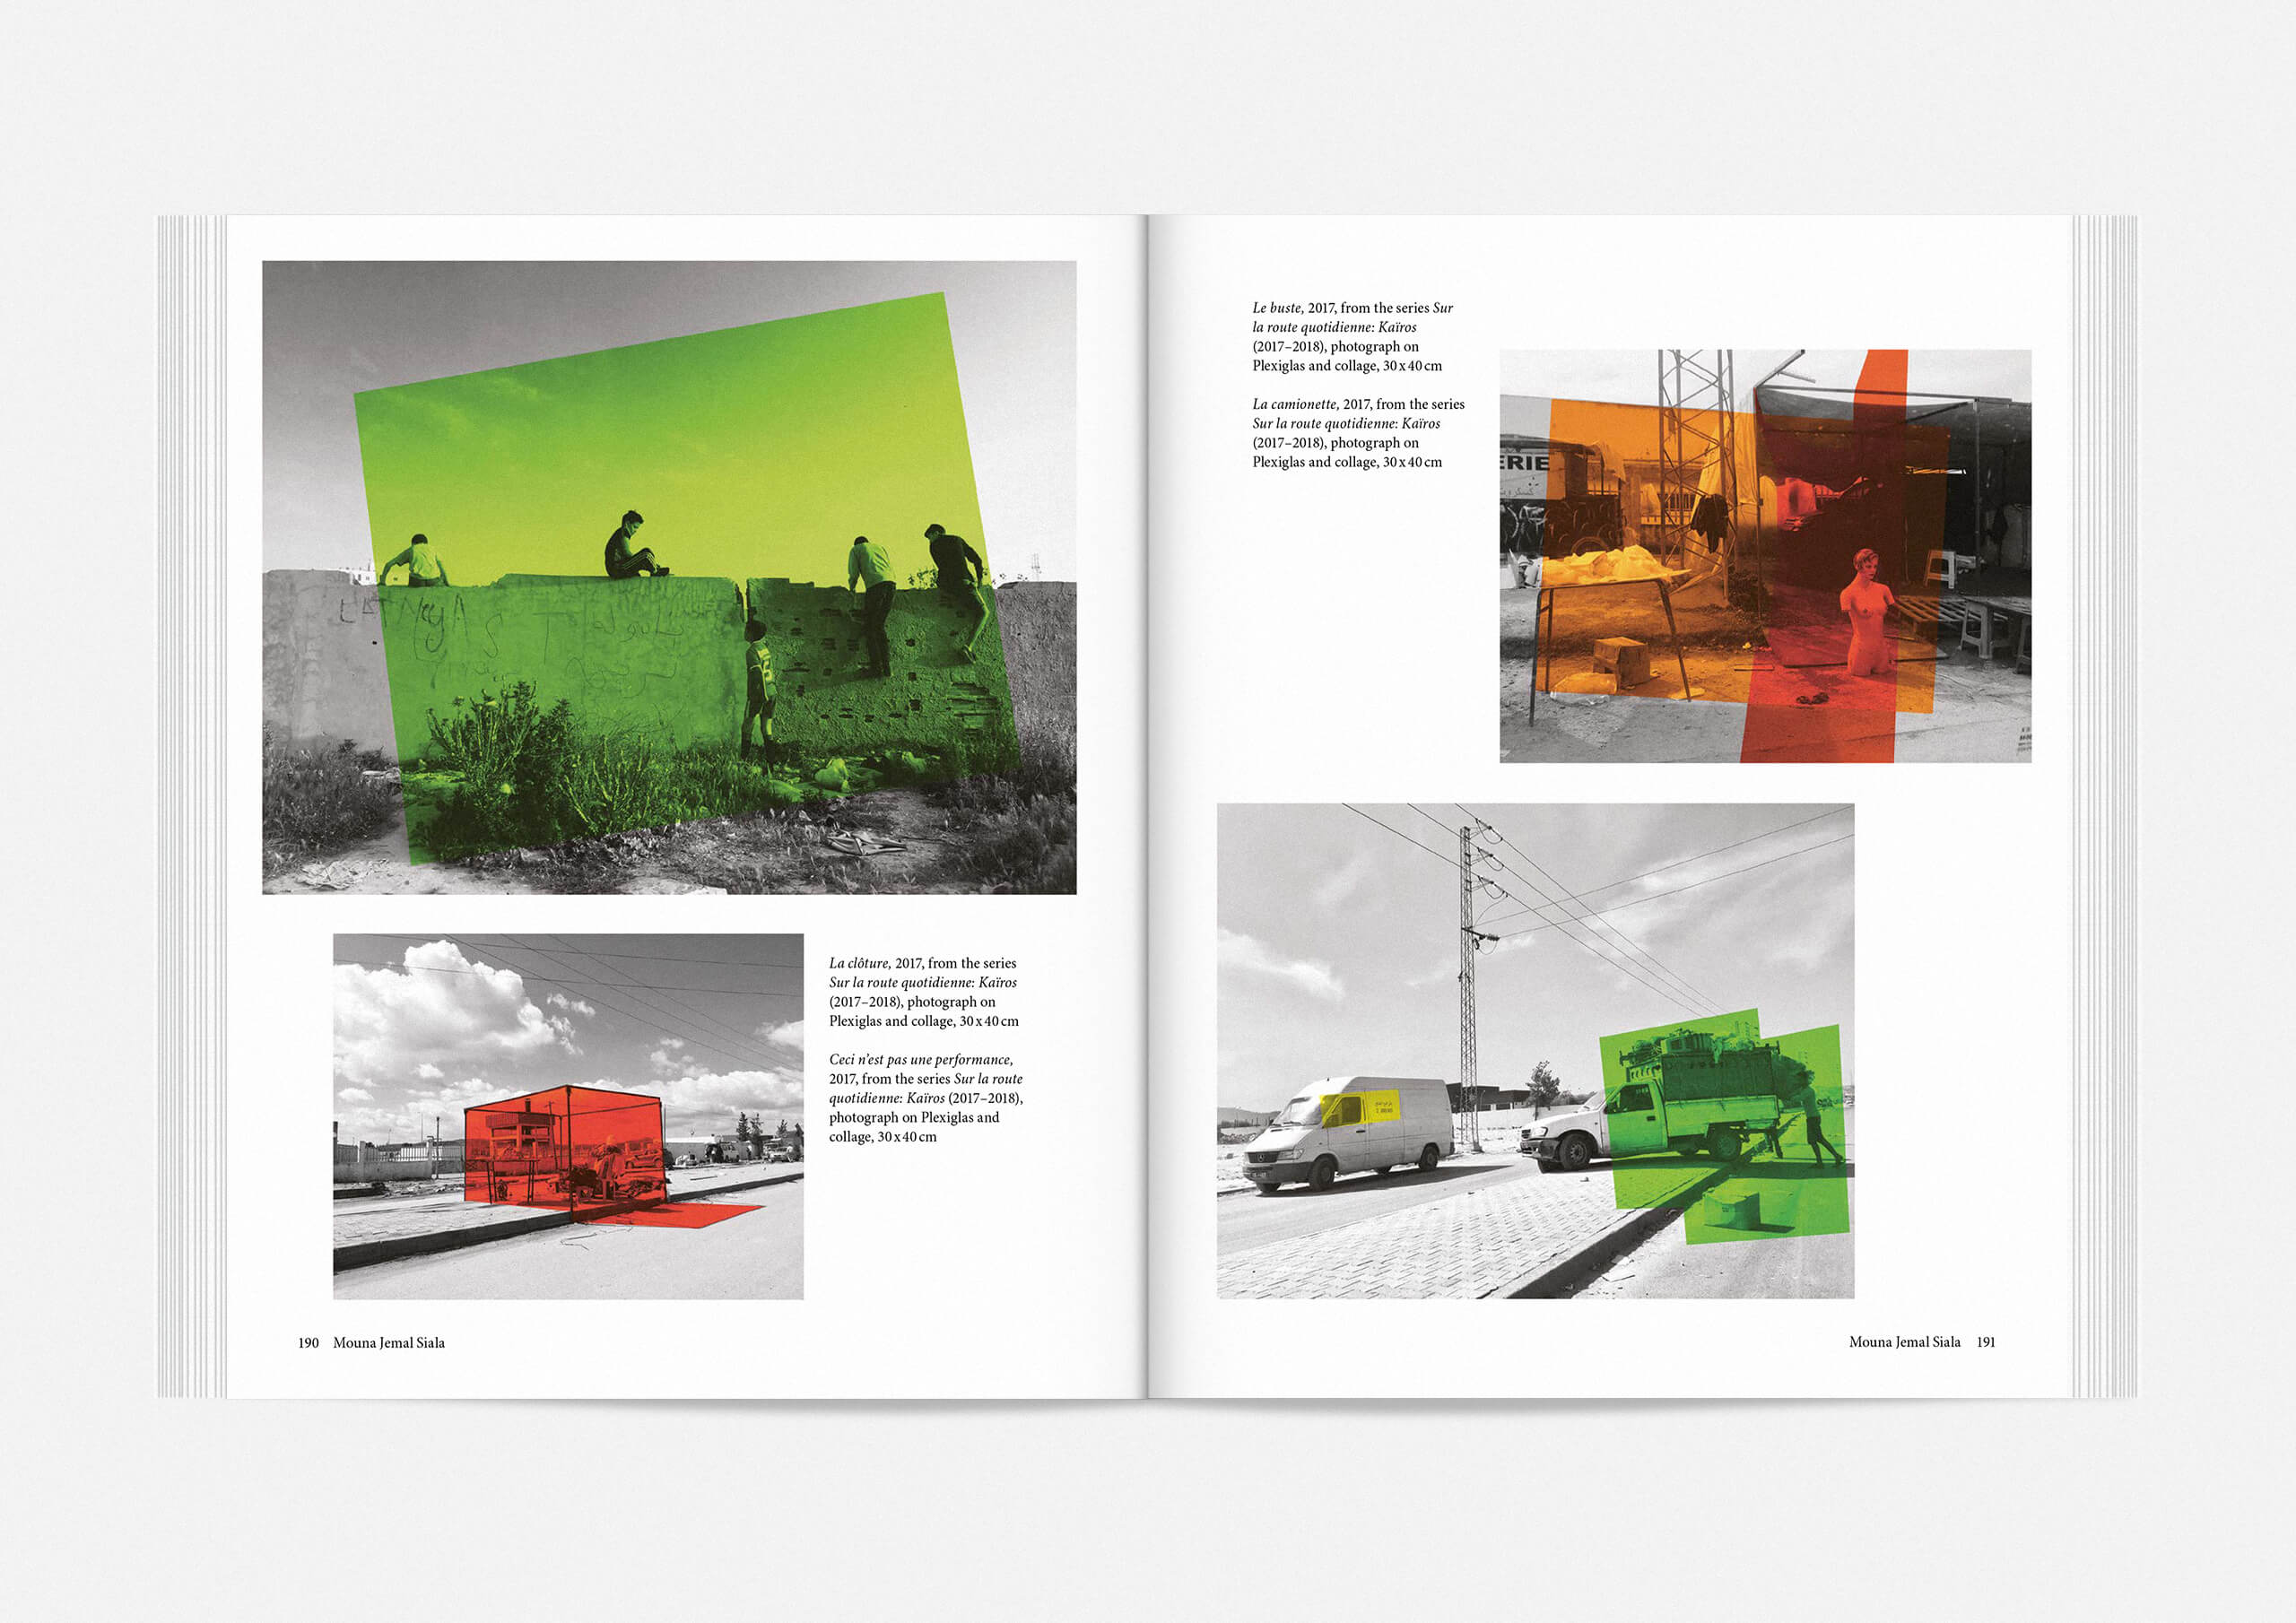 http://www.neuegestaltung.de/media/pages/clients/protocollum-issue-no-05/c6f4823c58-1597415142/protocollum-5-page-190191-ng.jpg